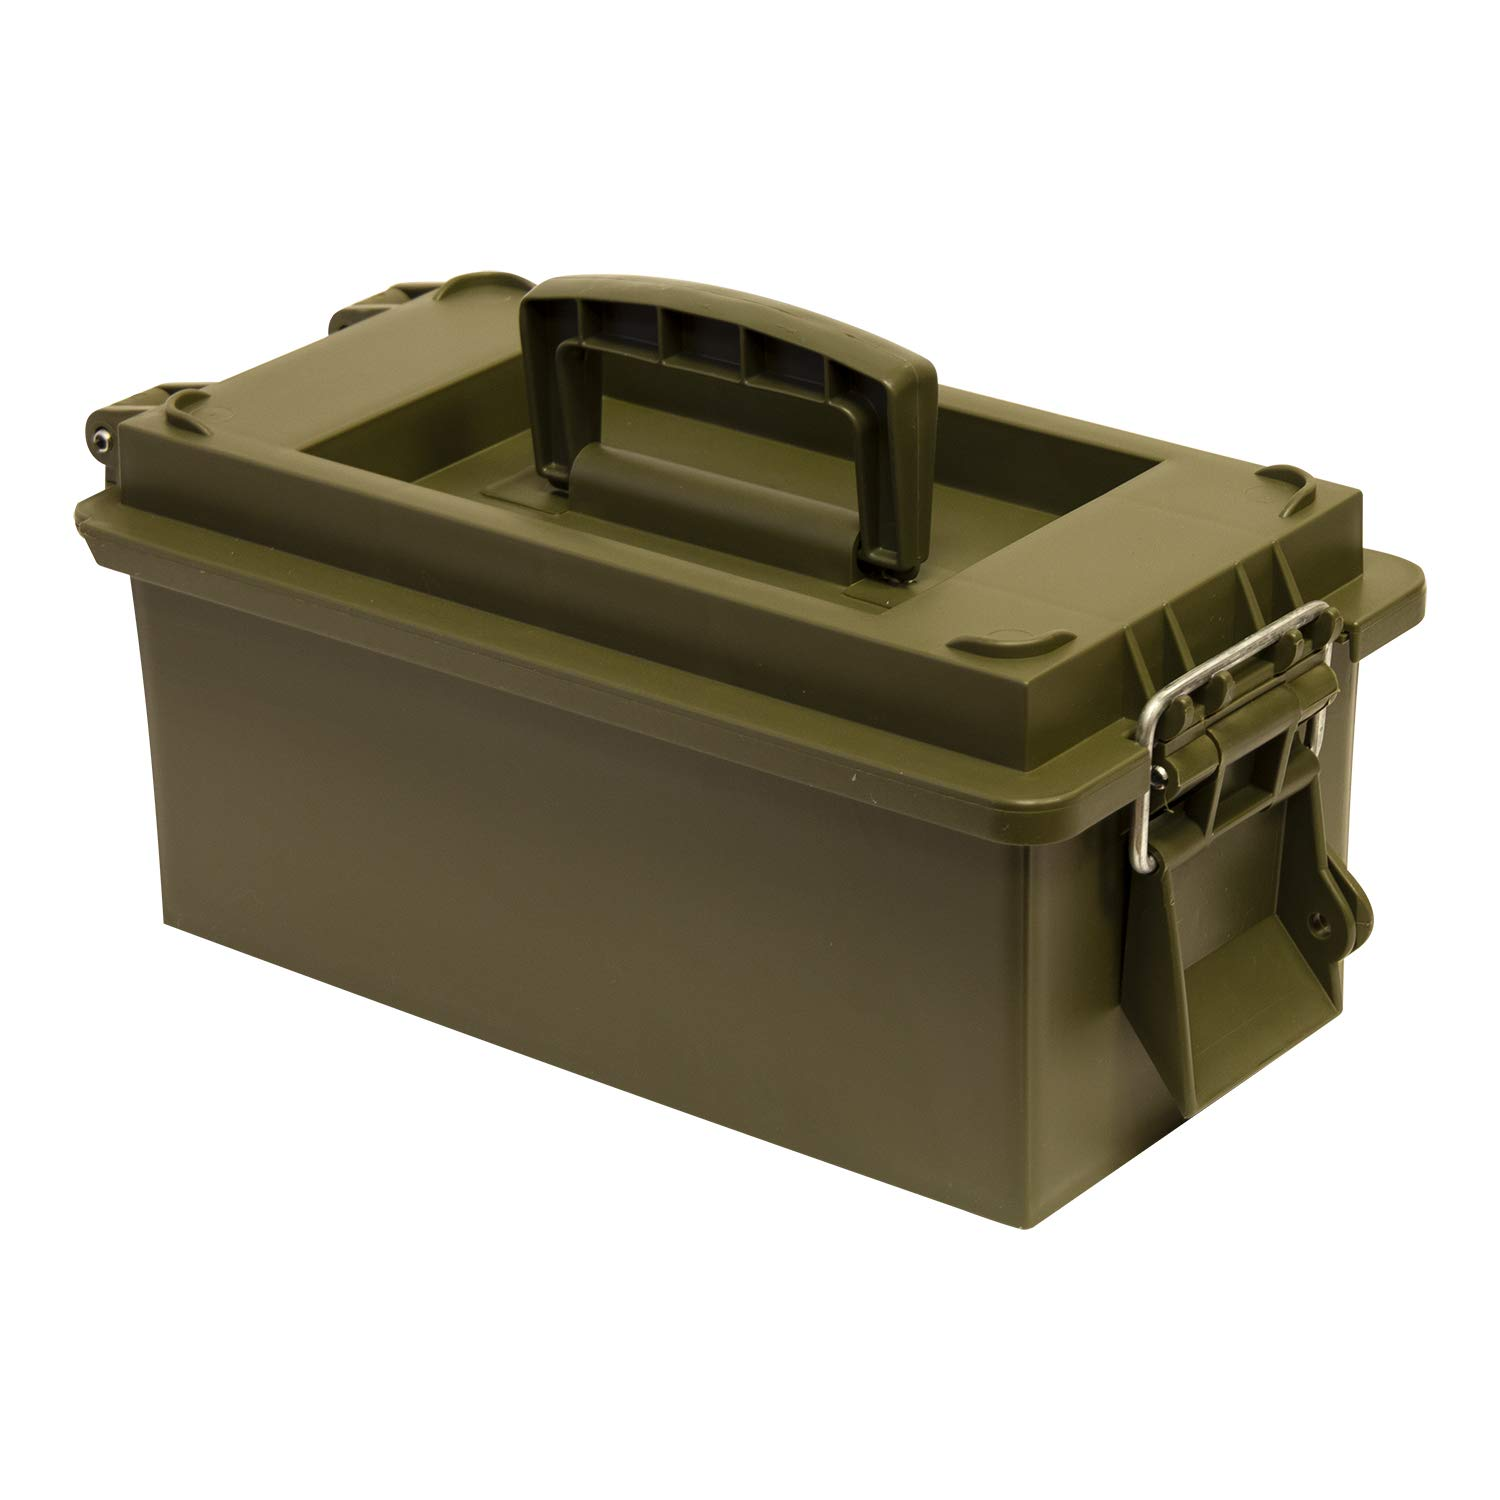 Wise Outdoors 5601-13 Small Utility Dry Box, Green by Wise